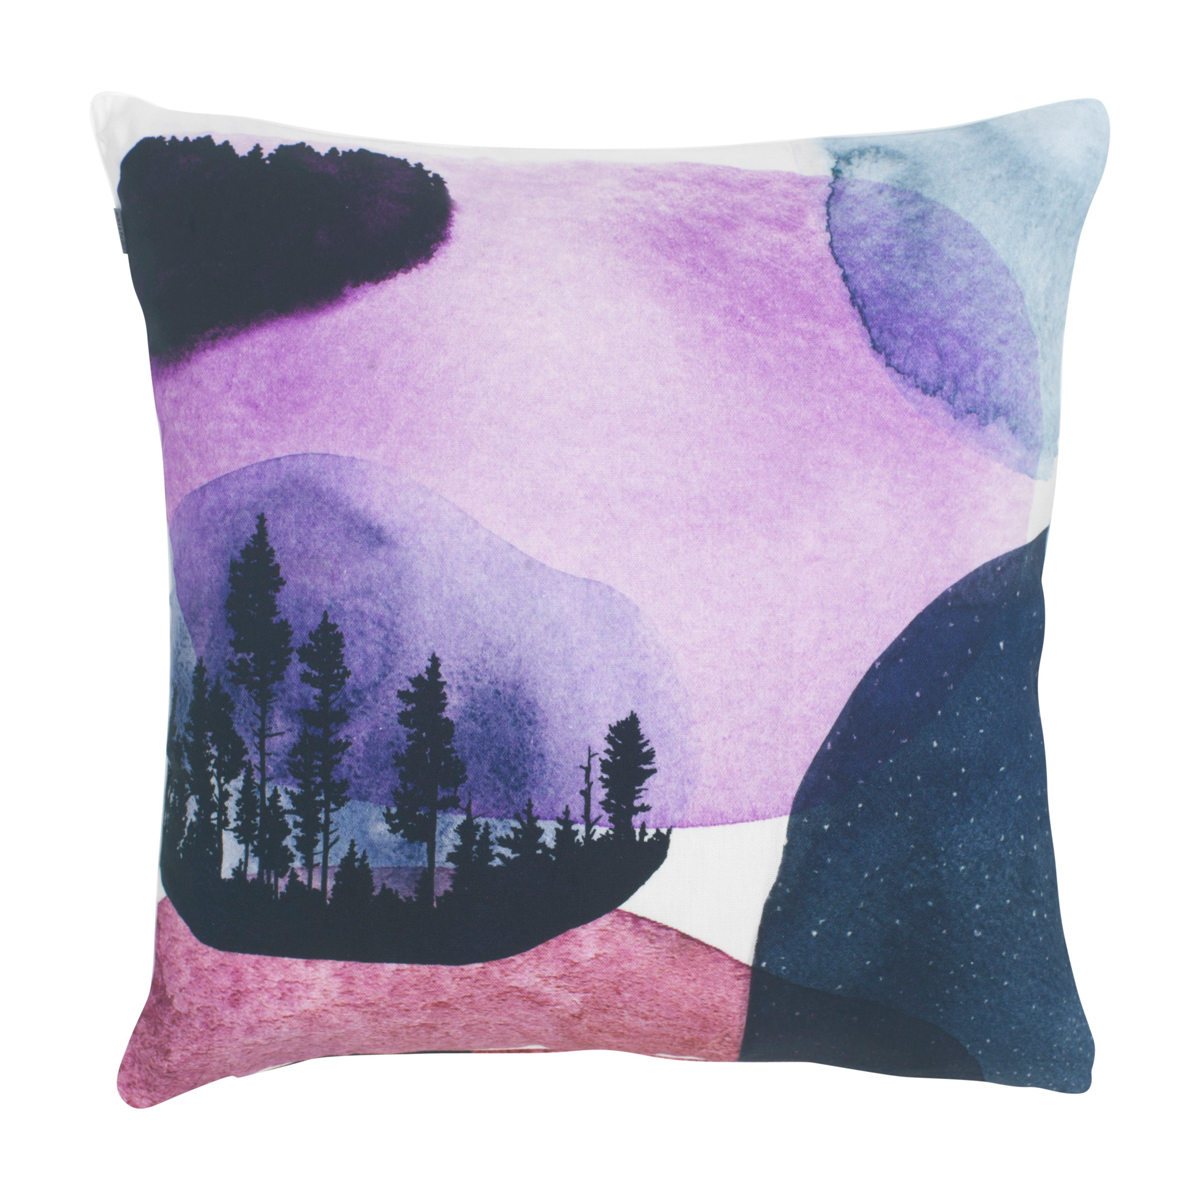 Throw Pillow Lilac : Pentik Maisema Lilac Throw Pillow - Additional Sale